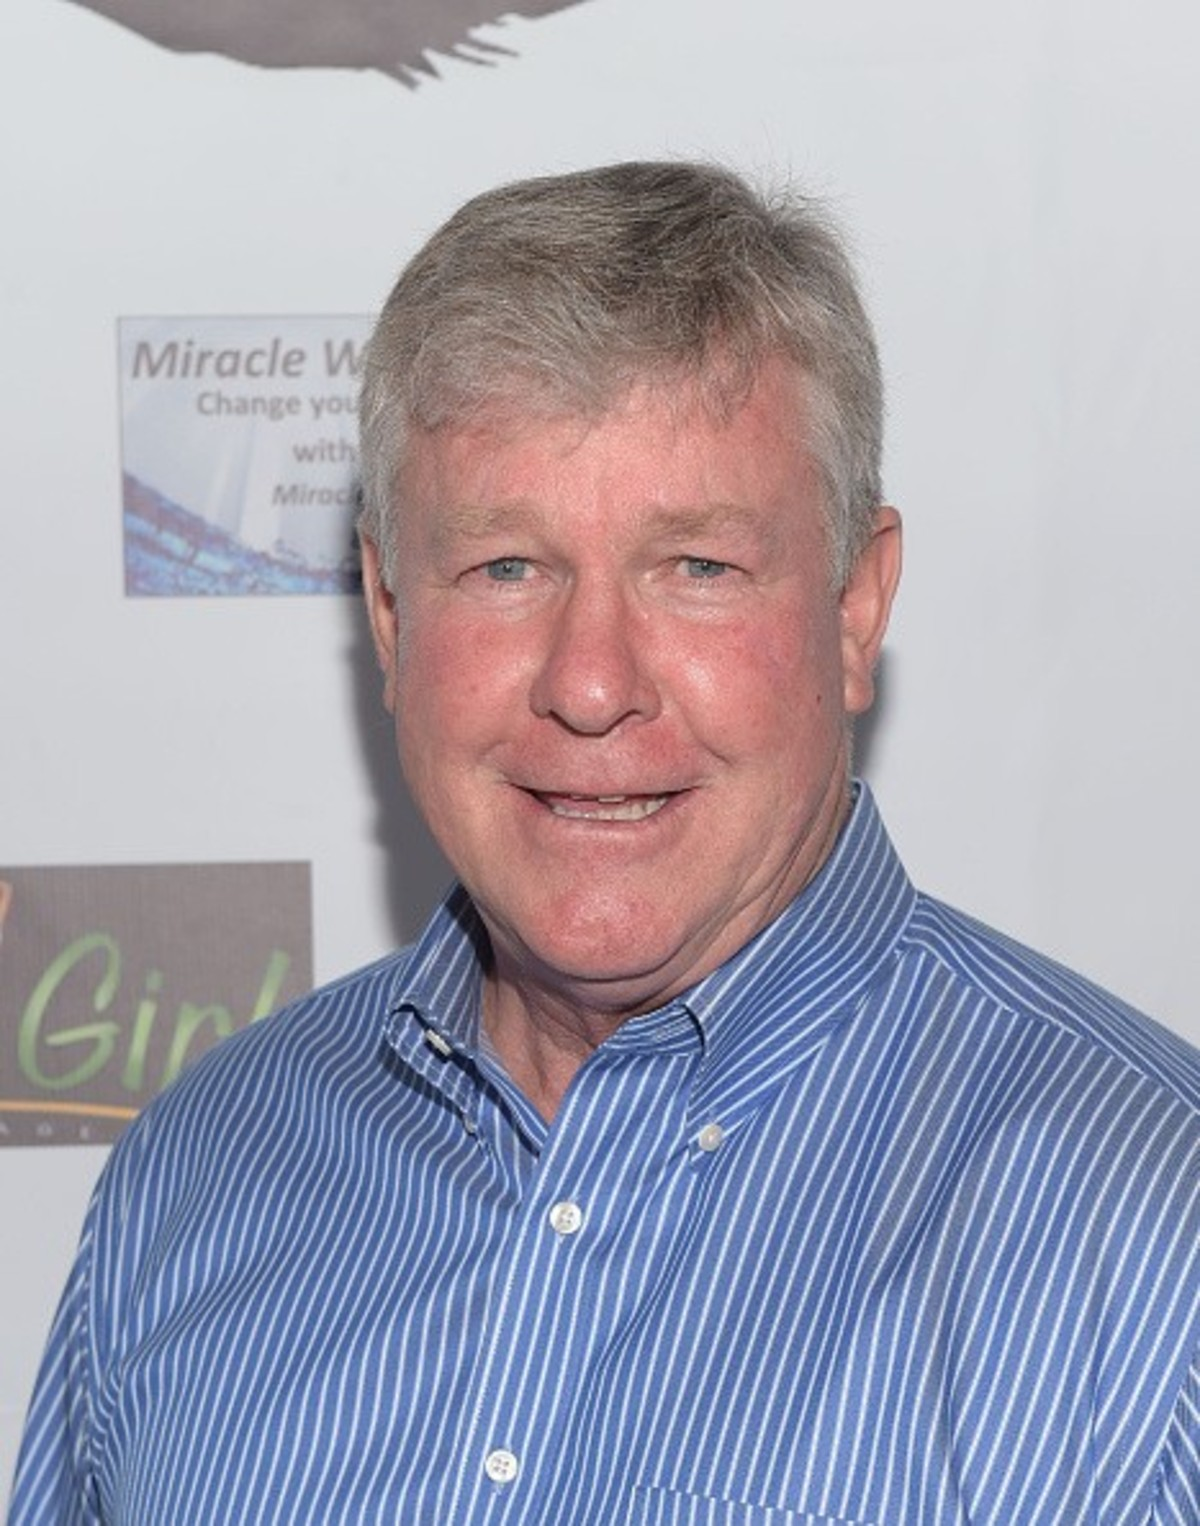 How tall is Larry Wilcox?